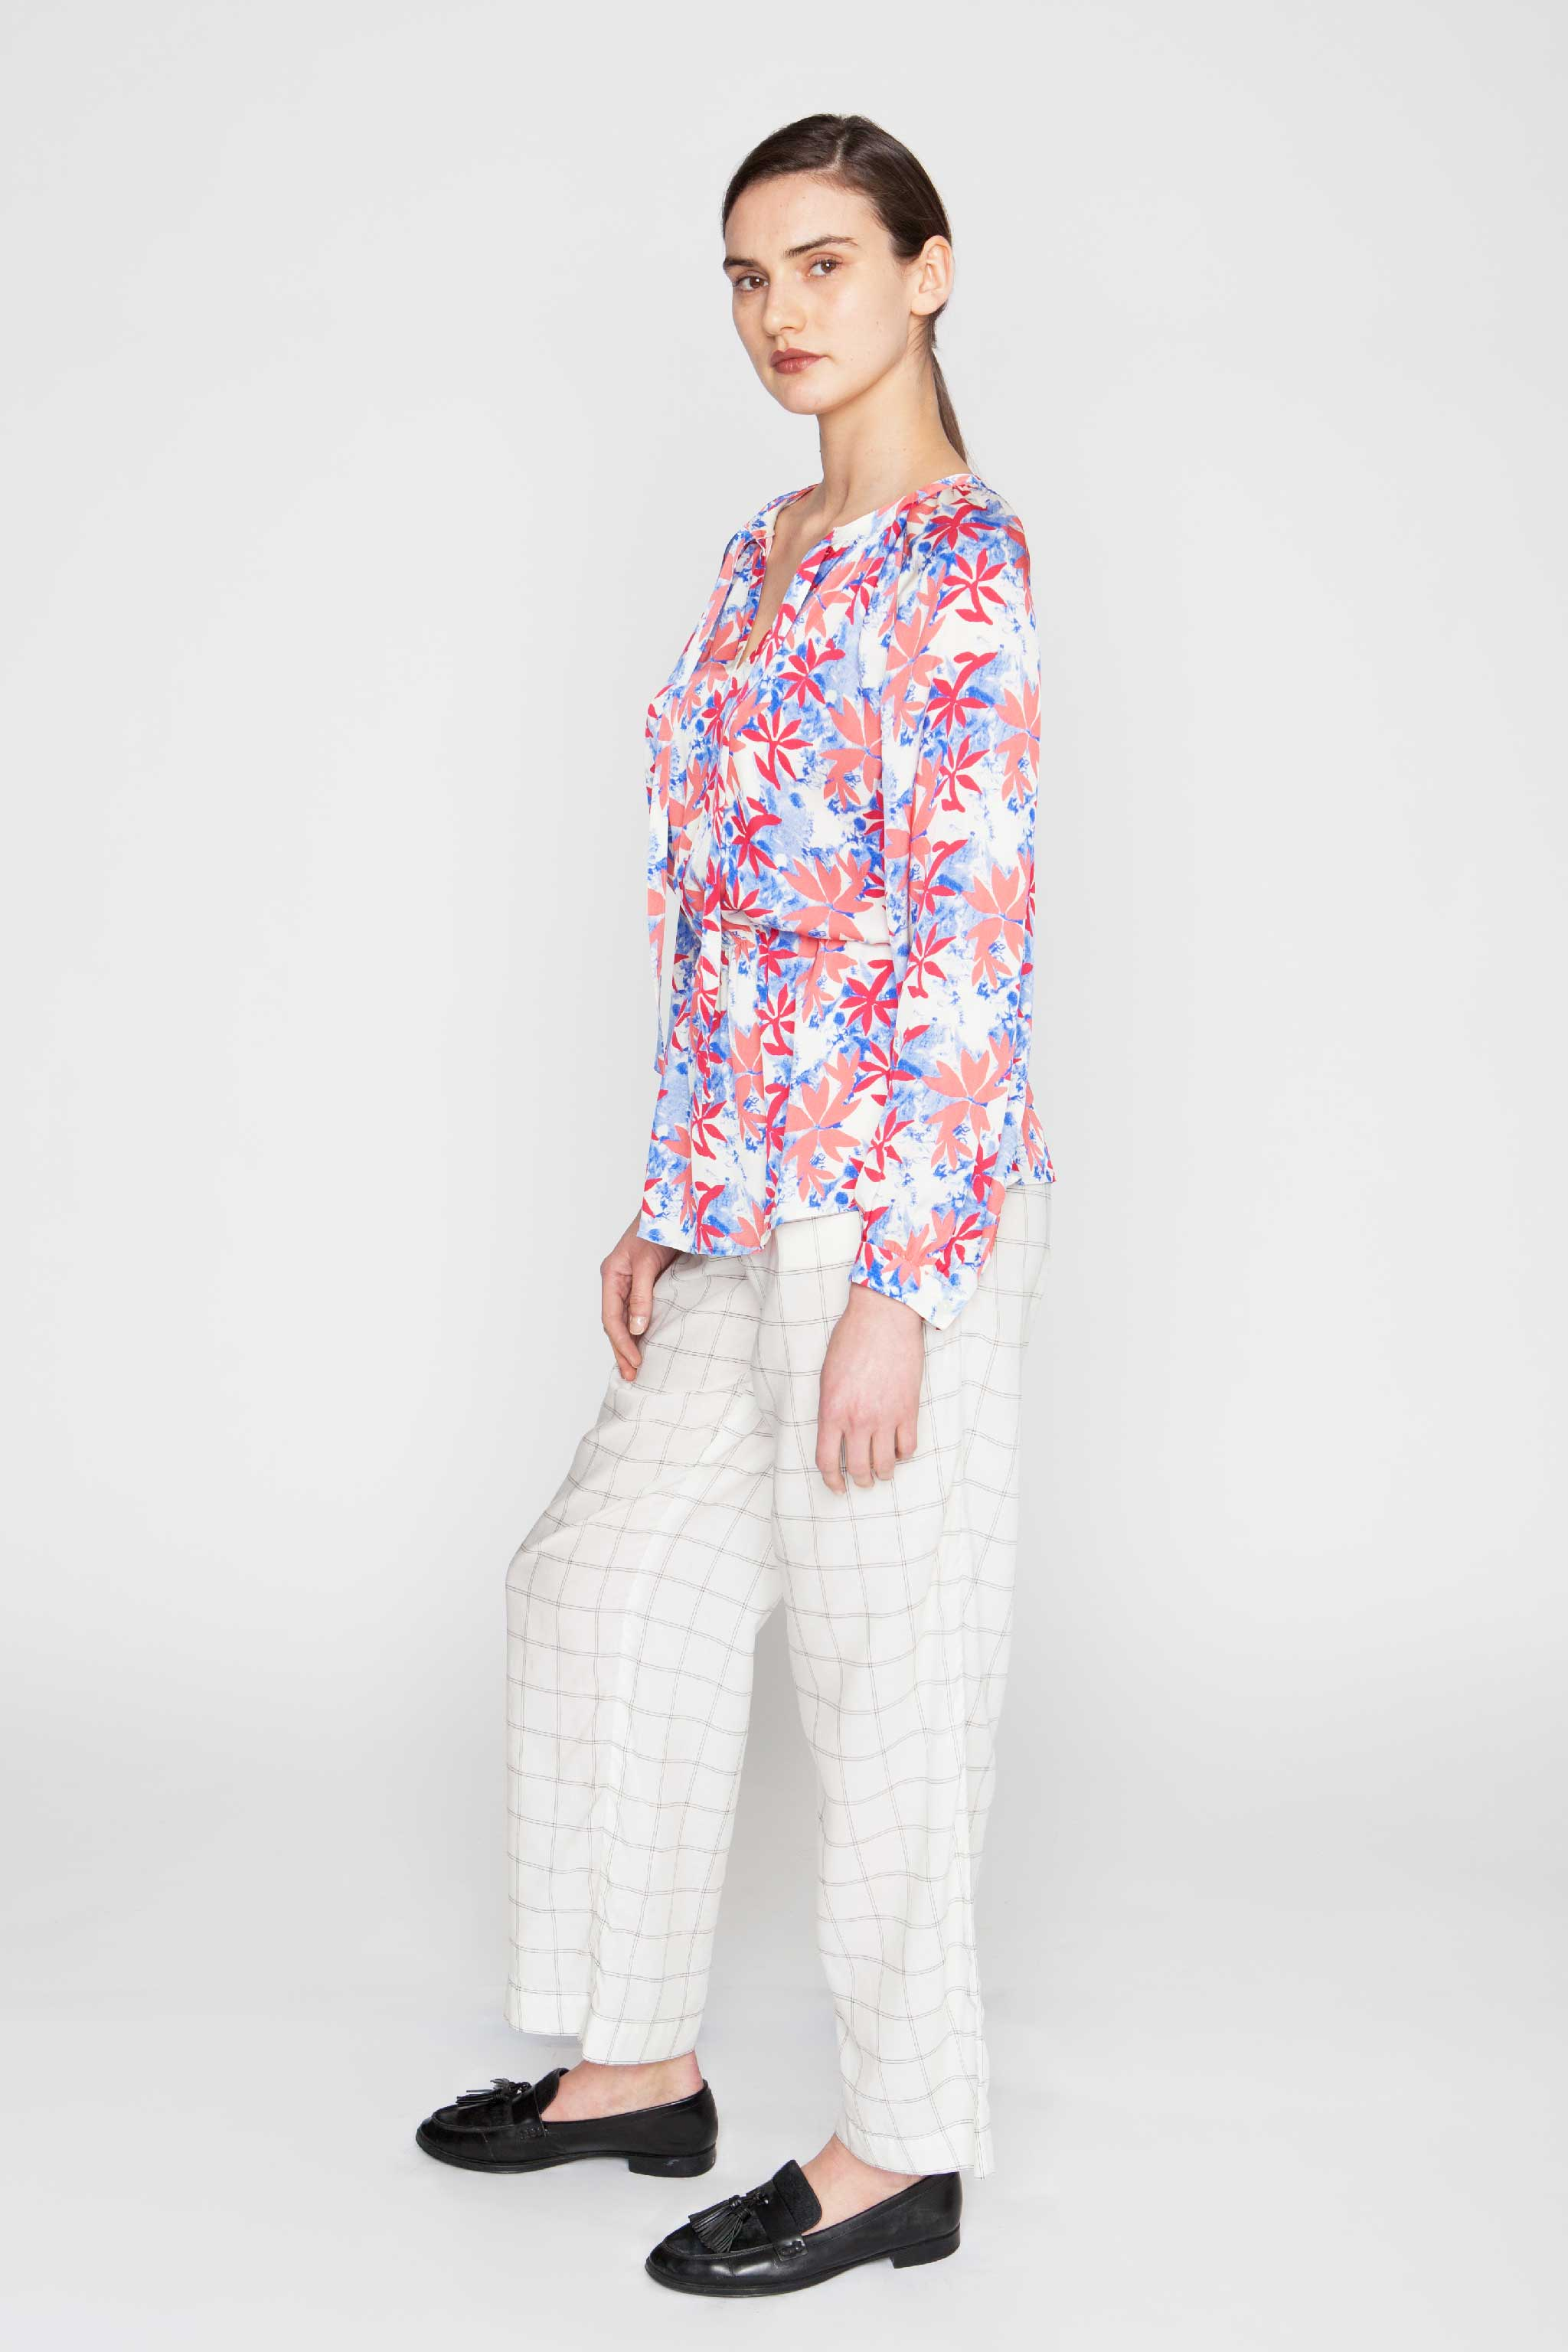 The Tie Neck Party Blouse | Tidy Tie-Dye